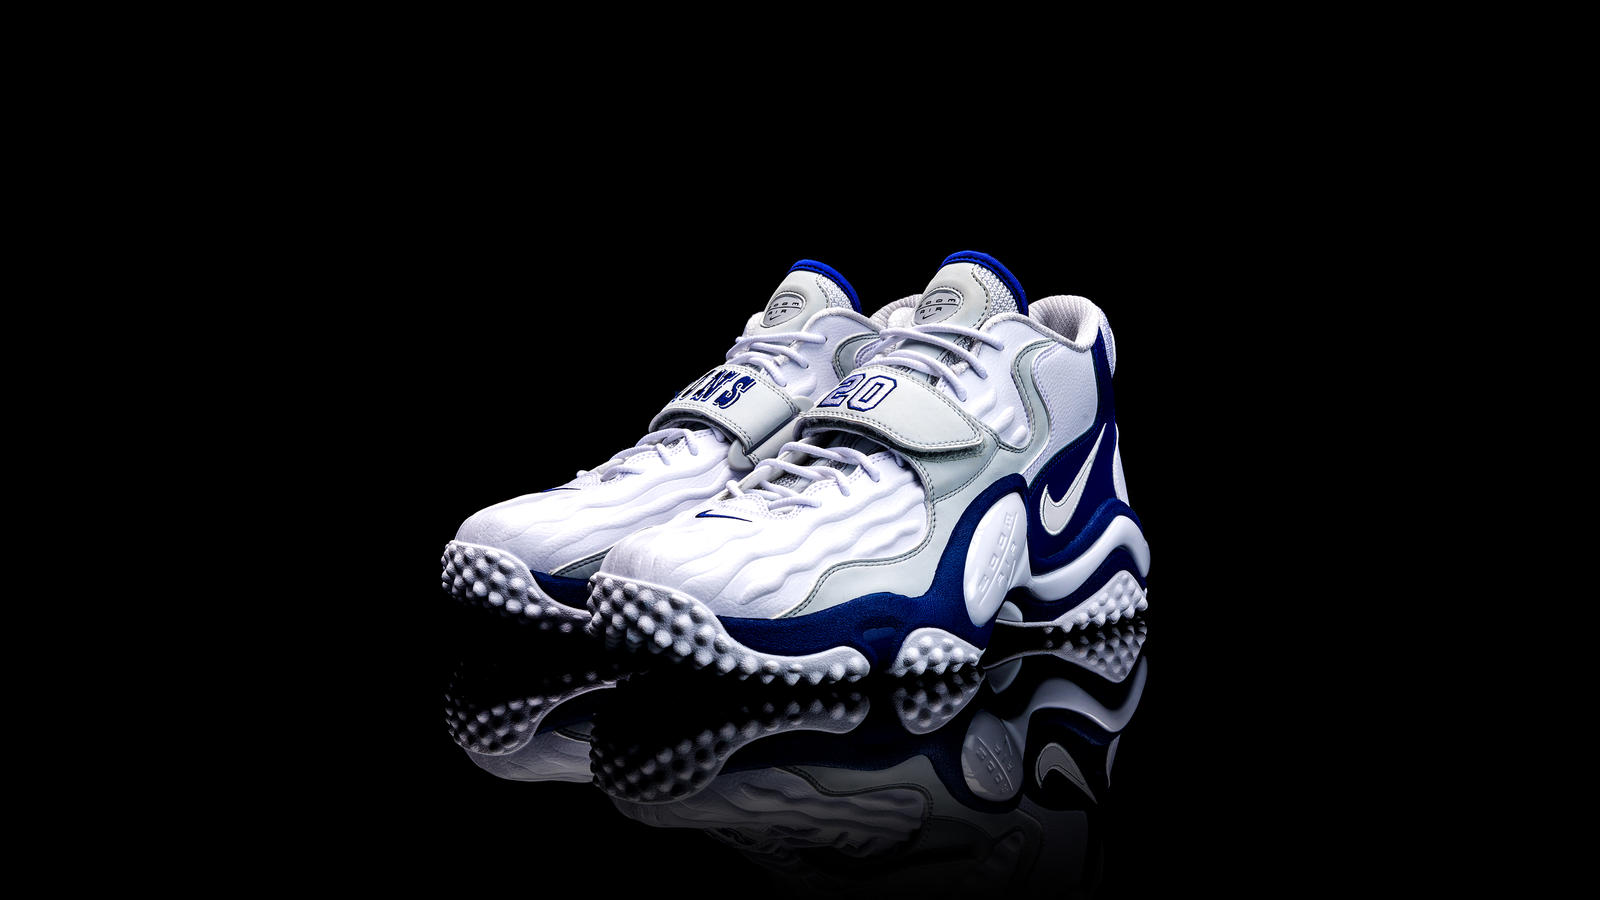 Barry Sanders Nike Air Zoom Turf Jet 97 2